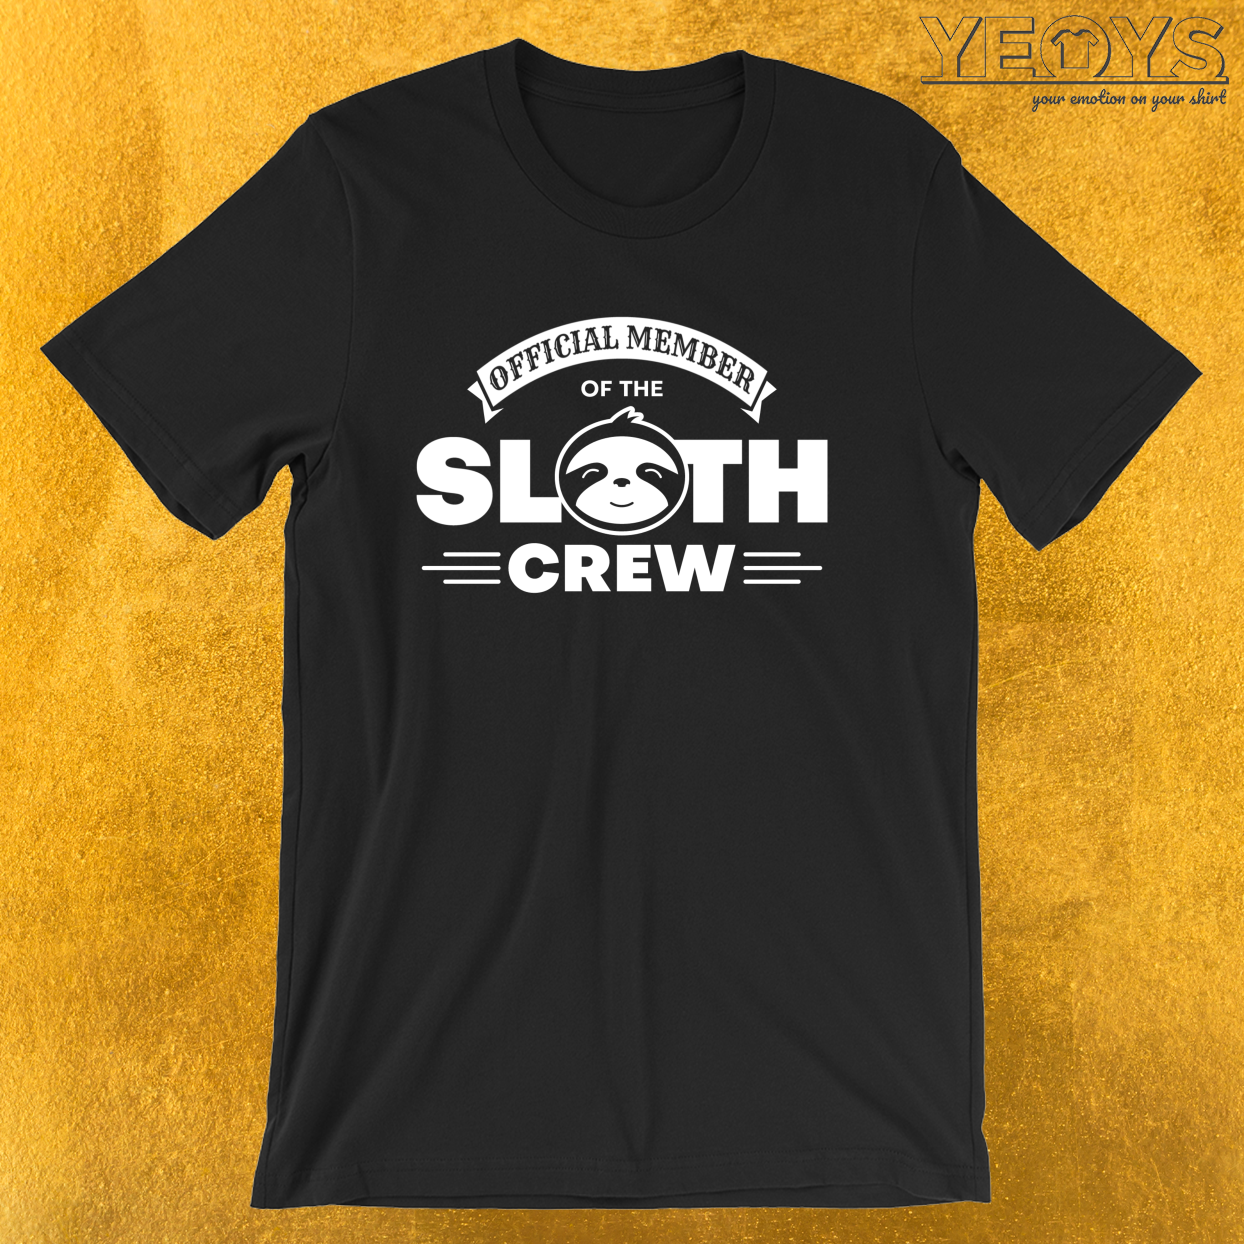 Official Member Of The Sloth Crew – Team Sloth Tee